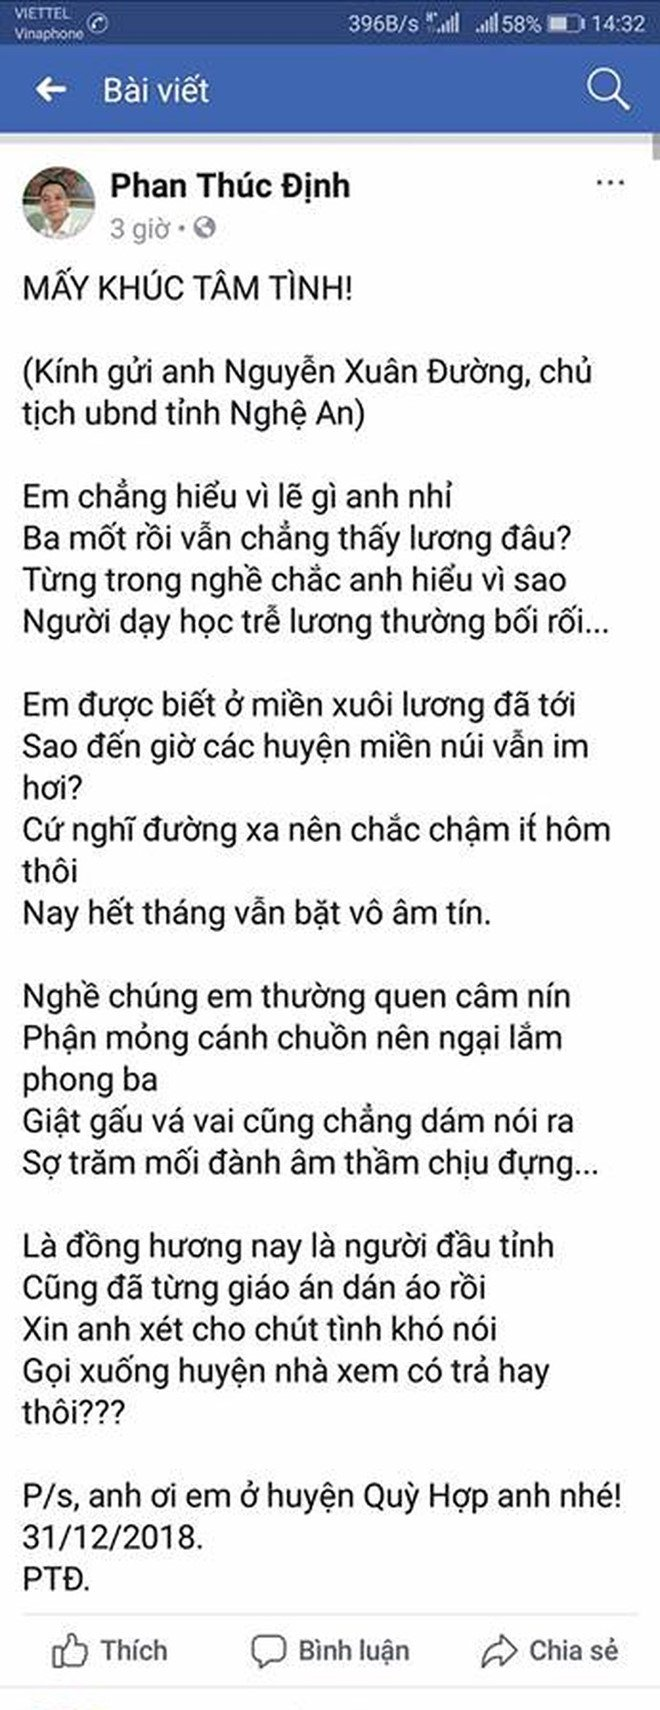 Thay giao lam tho cham luong, Chu tich tinh Nghe An lap tuc phan hoi hinh anh 2